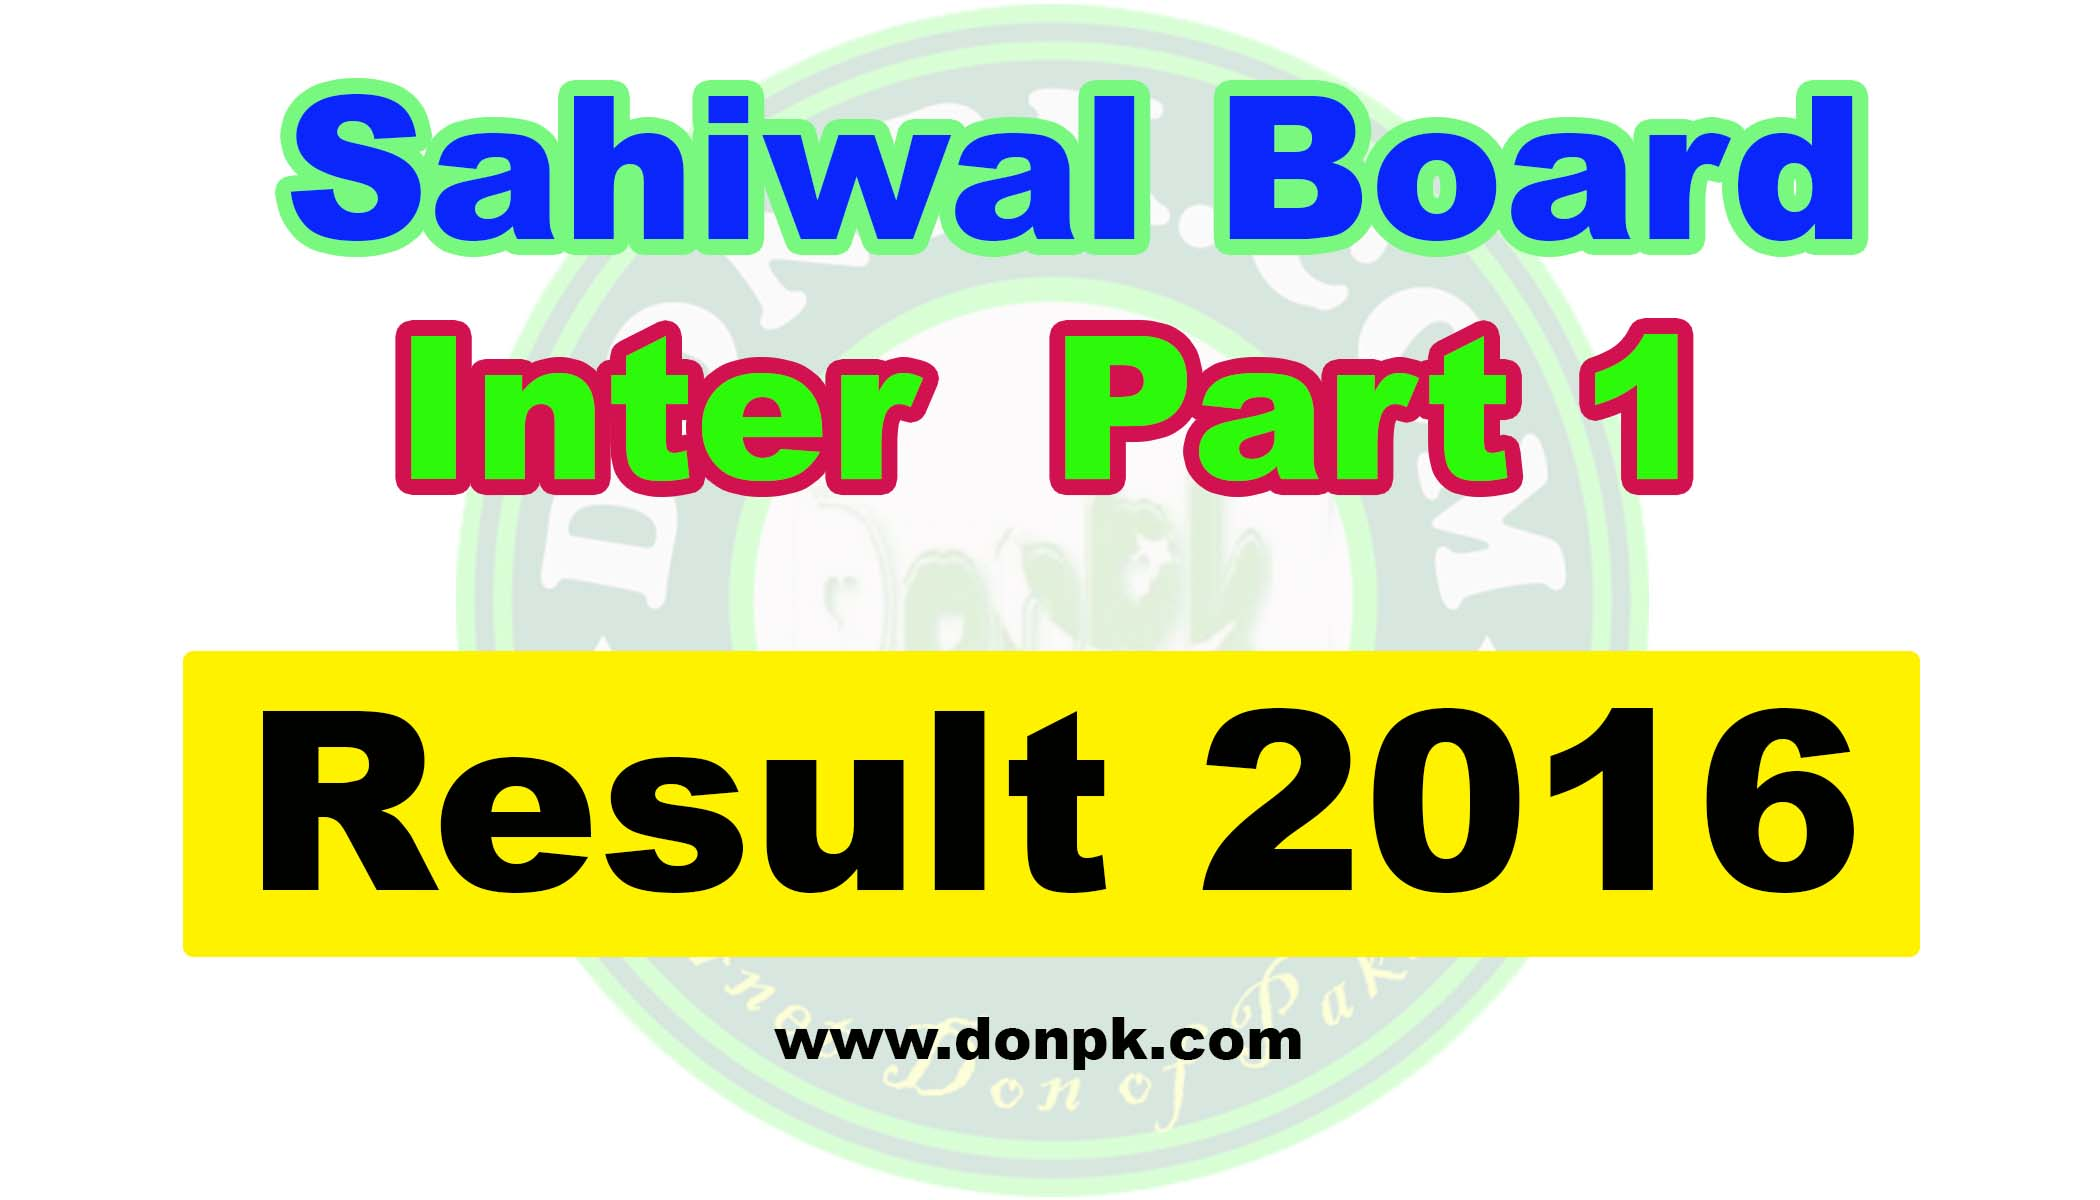 Bise Sahiwal Board FA FSC Part 1 1st Year Result 2016